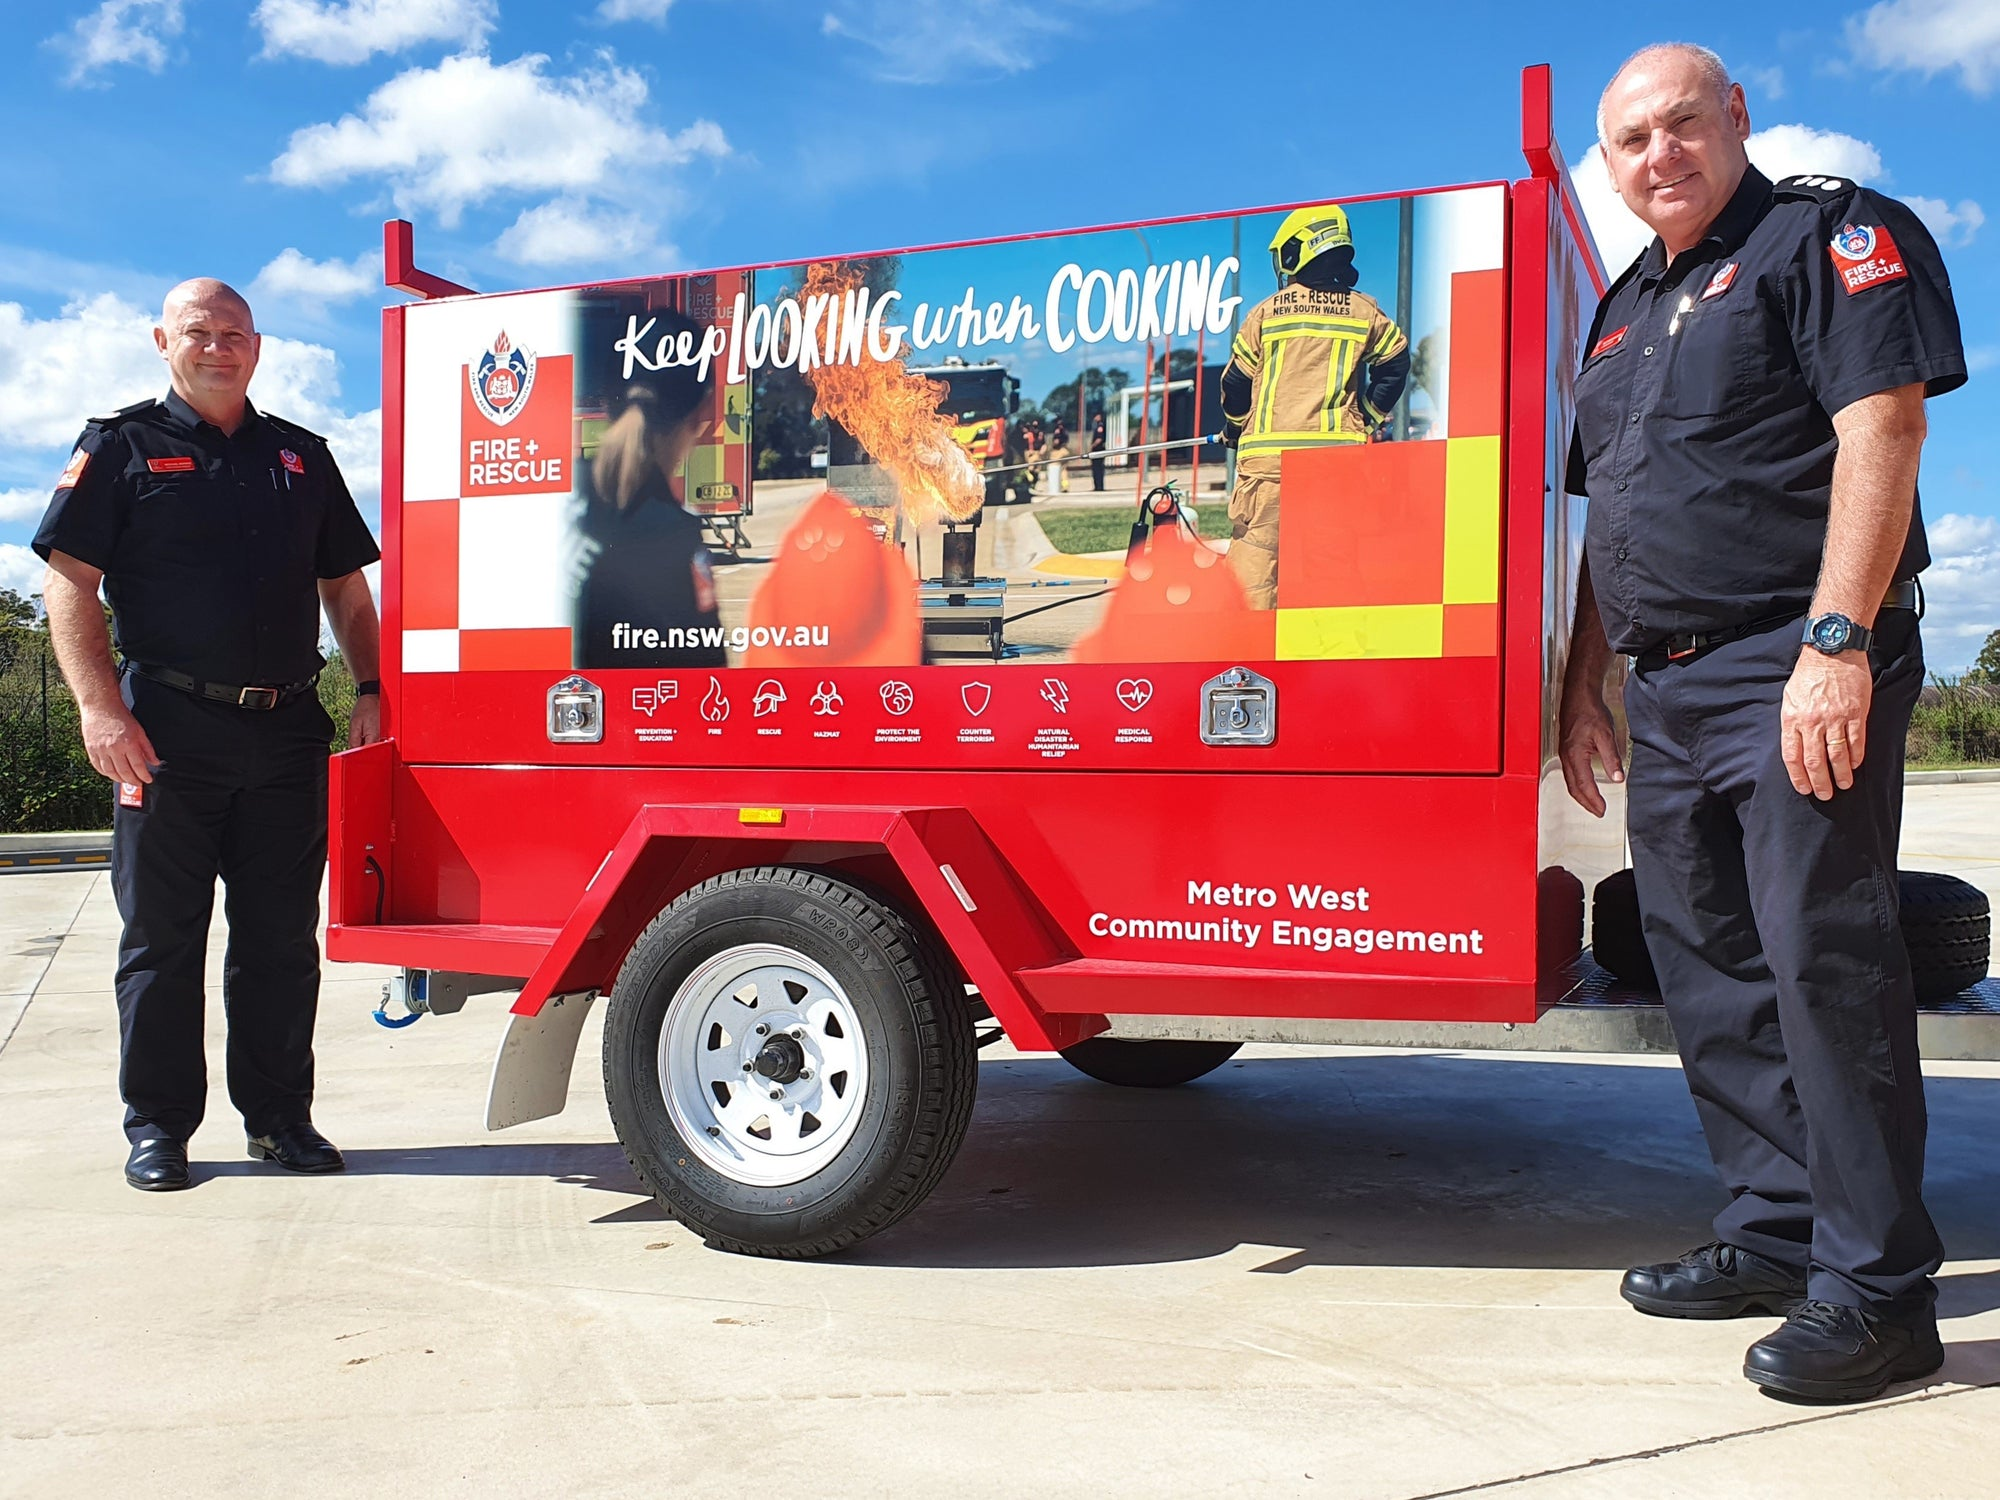 Ballina RFS first to get new Fire education trailer